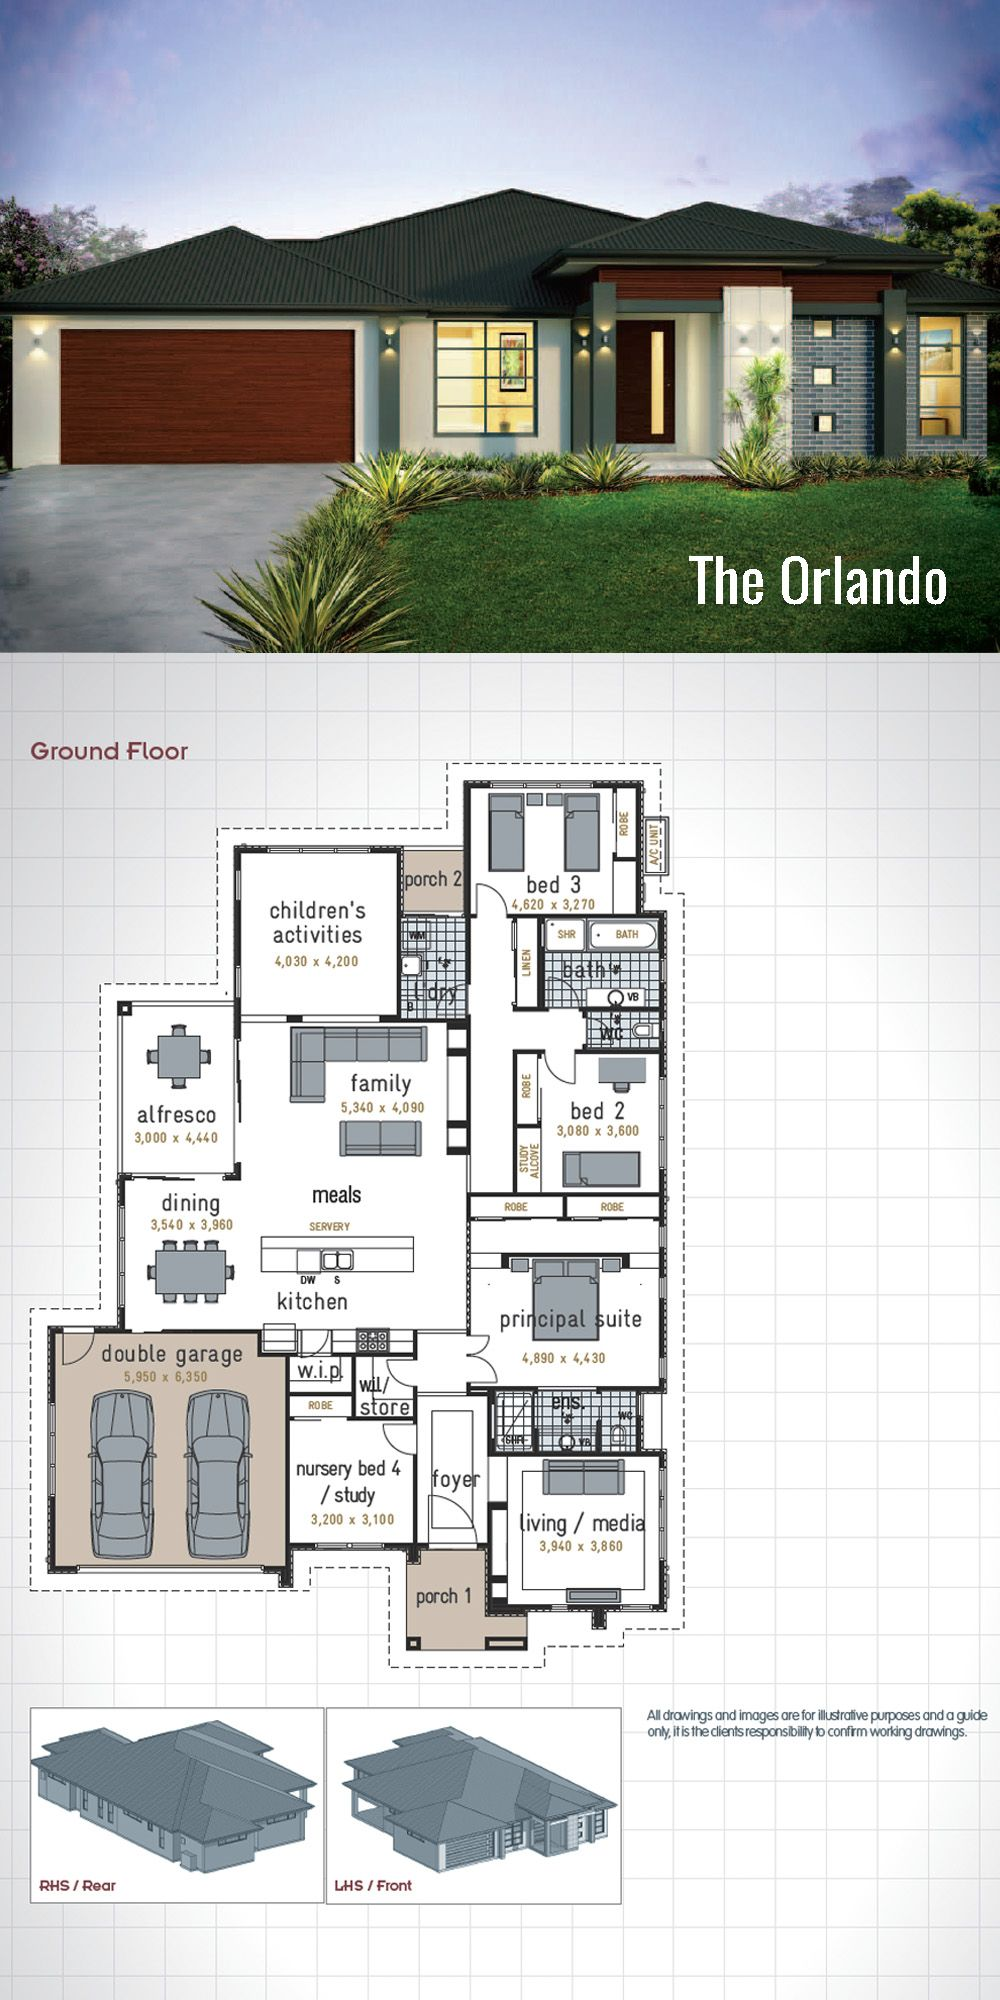 Single storey house design the orlando a generous size for 1 storey house plans